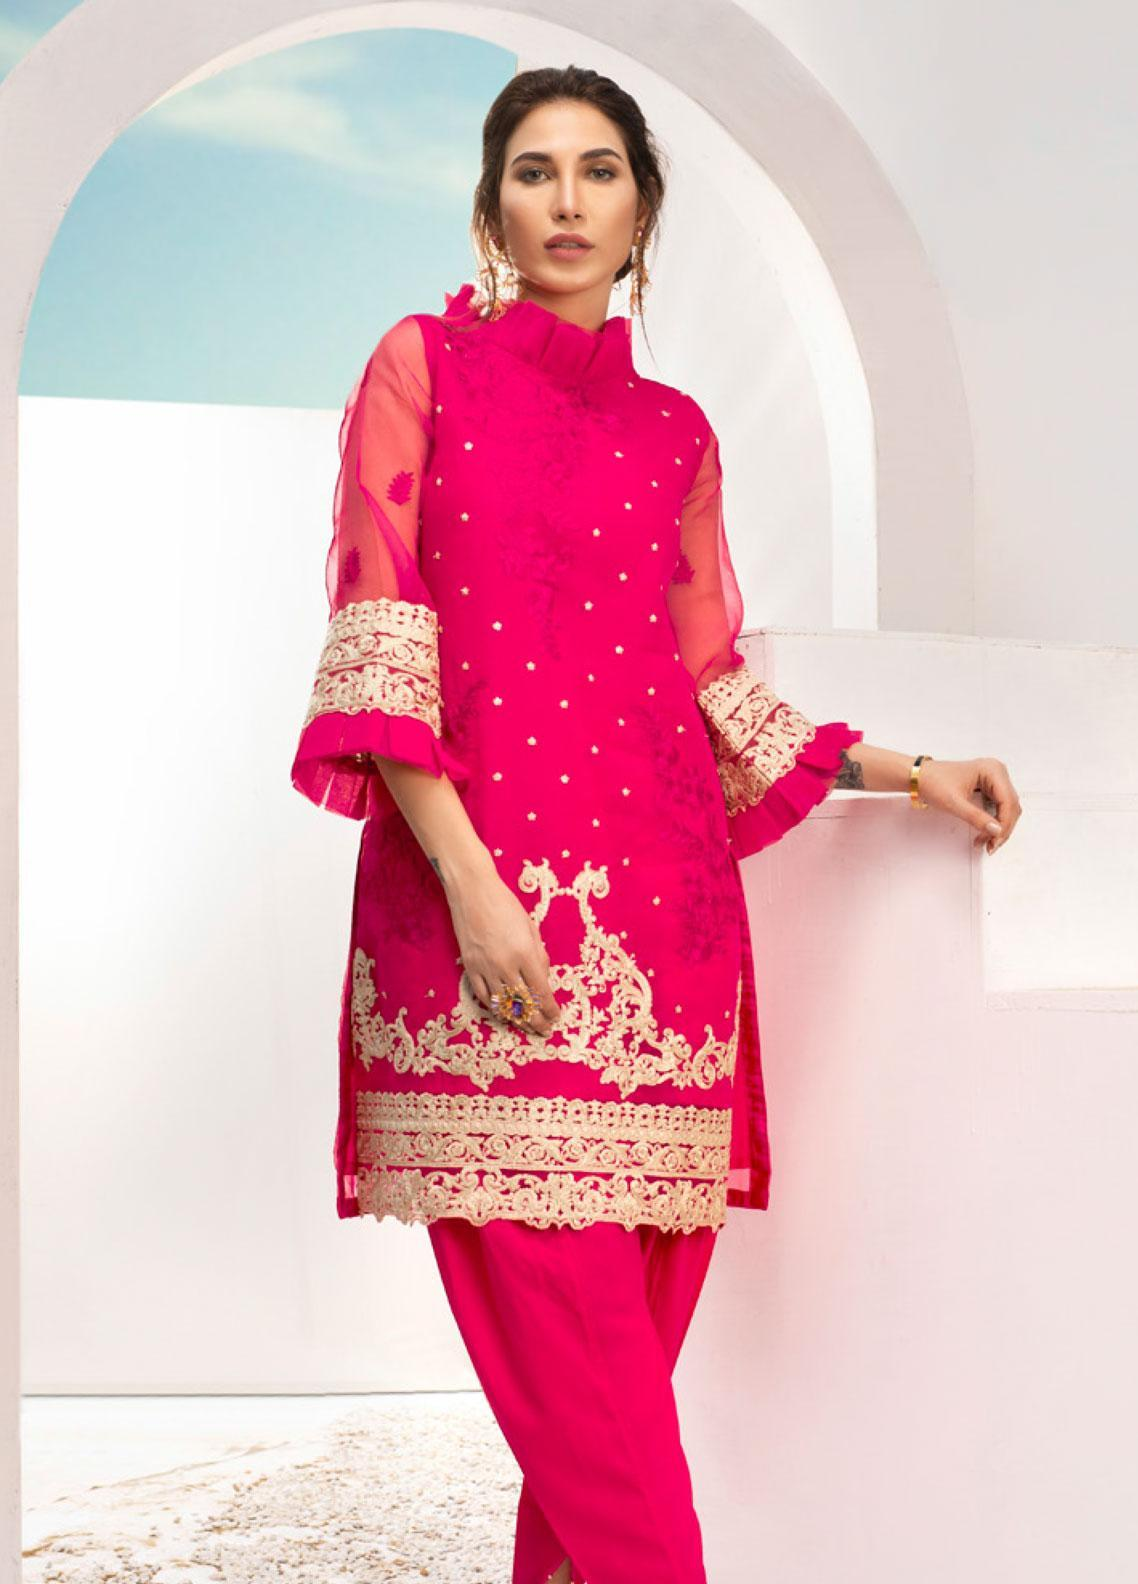 Azure Embroidered Organza Unstitched Kurties AZU19-E3 03 FUSHIA BLING - Luxury Formal Collection